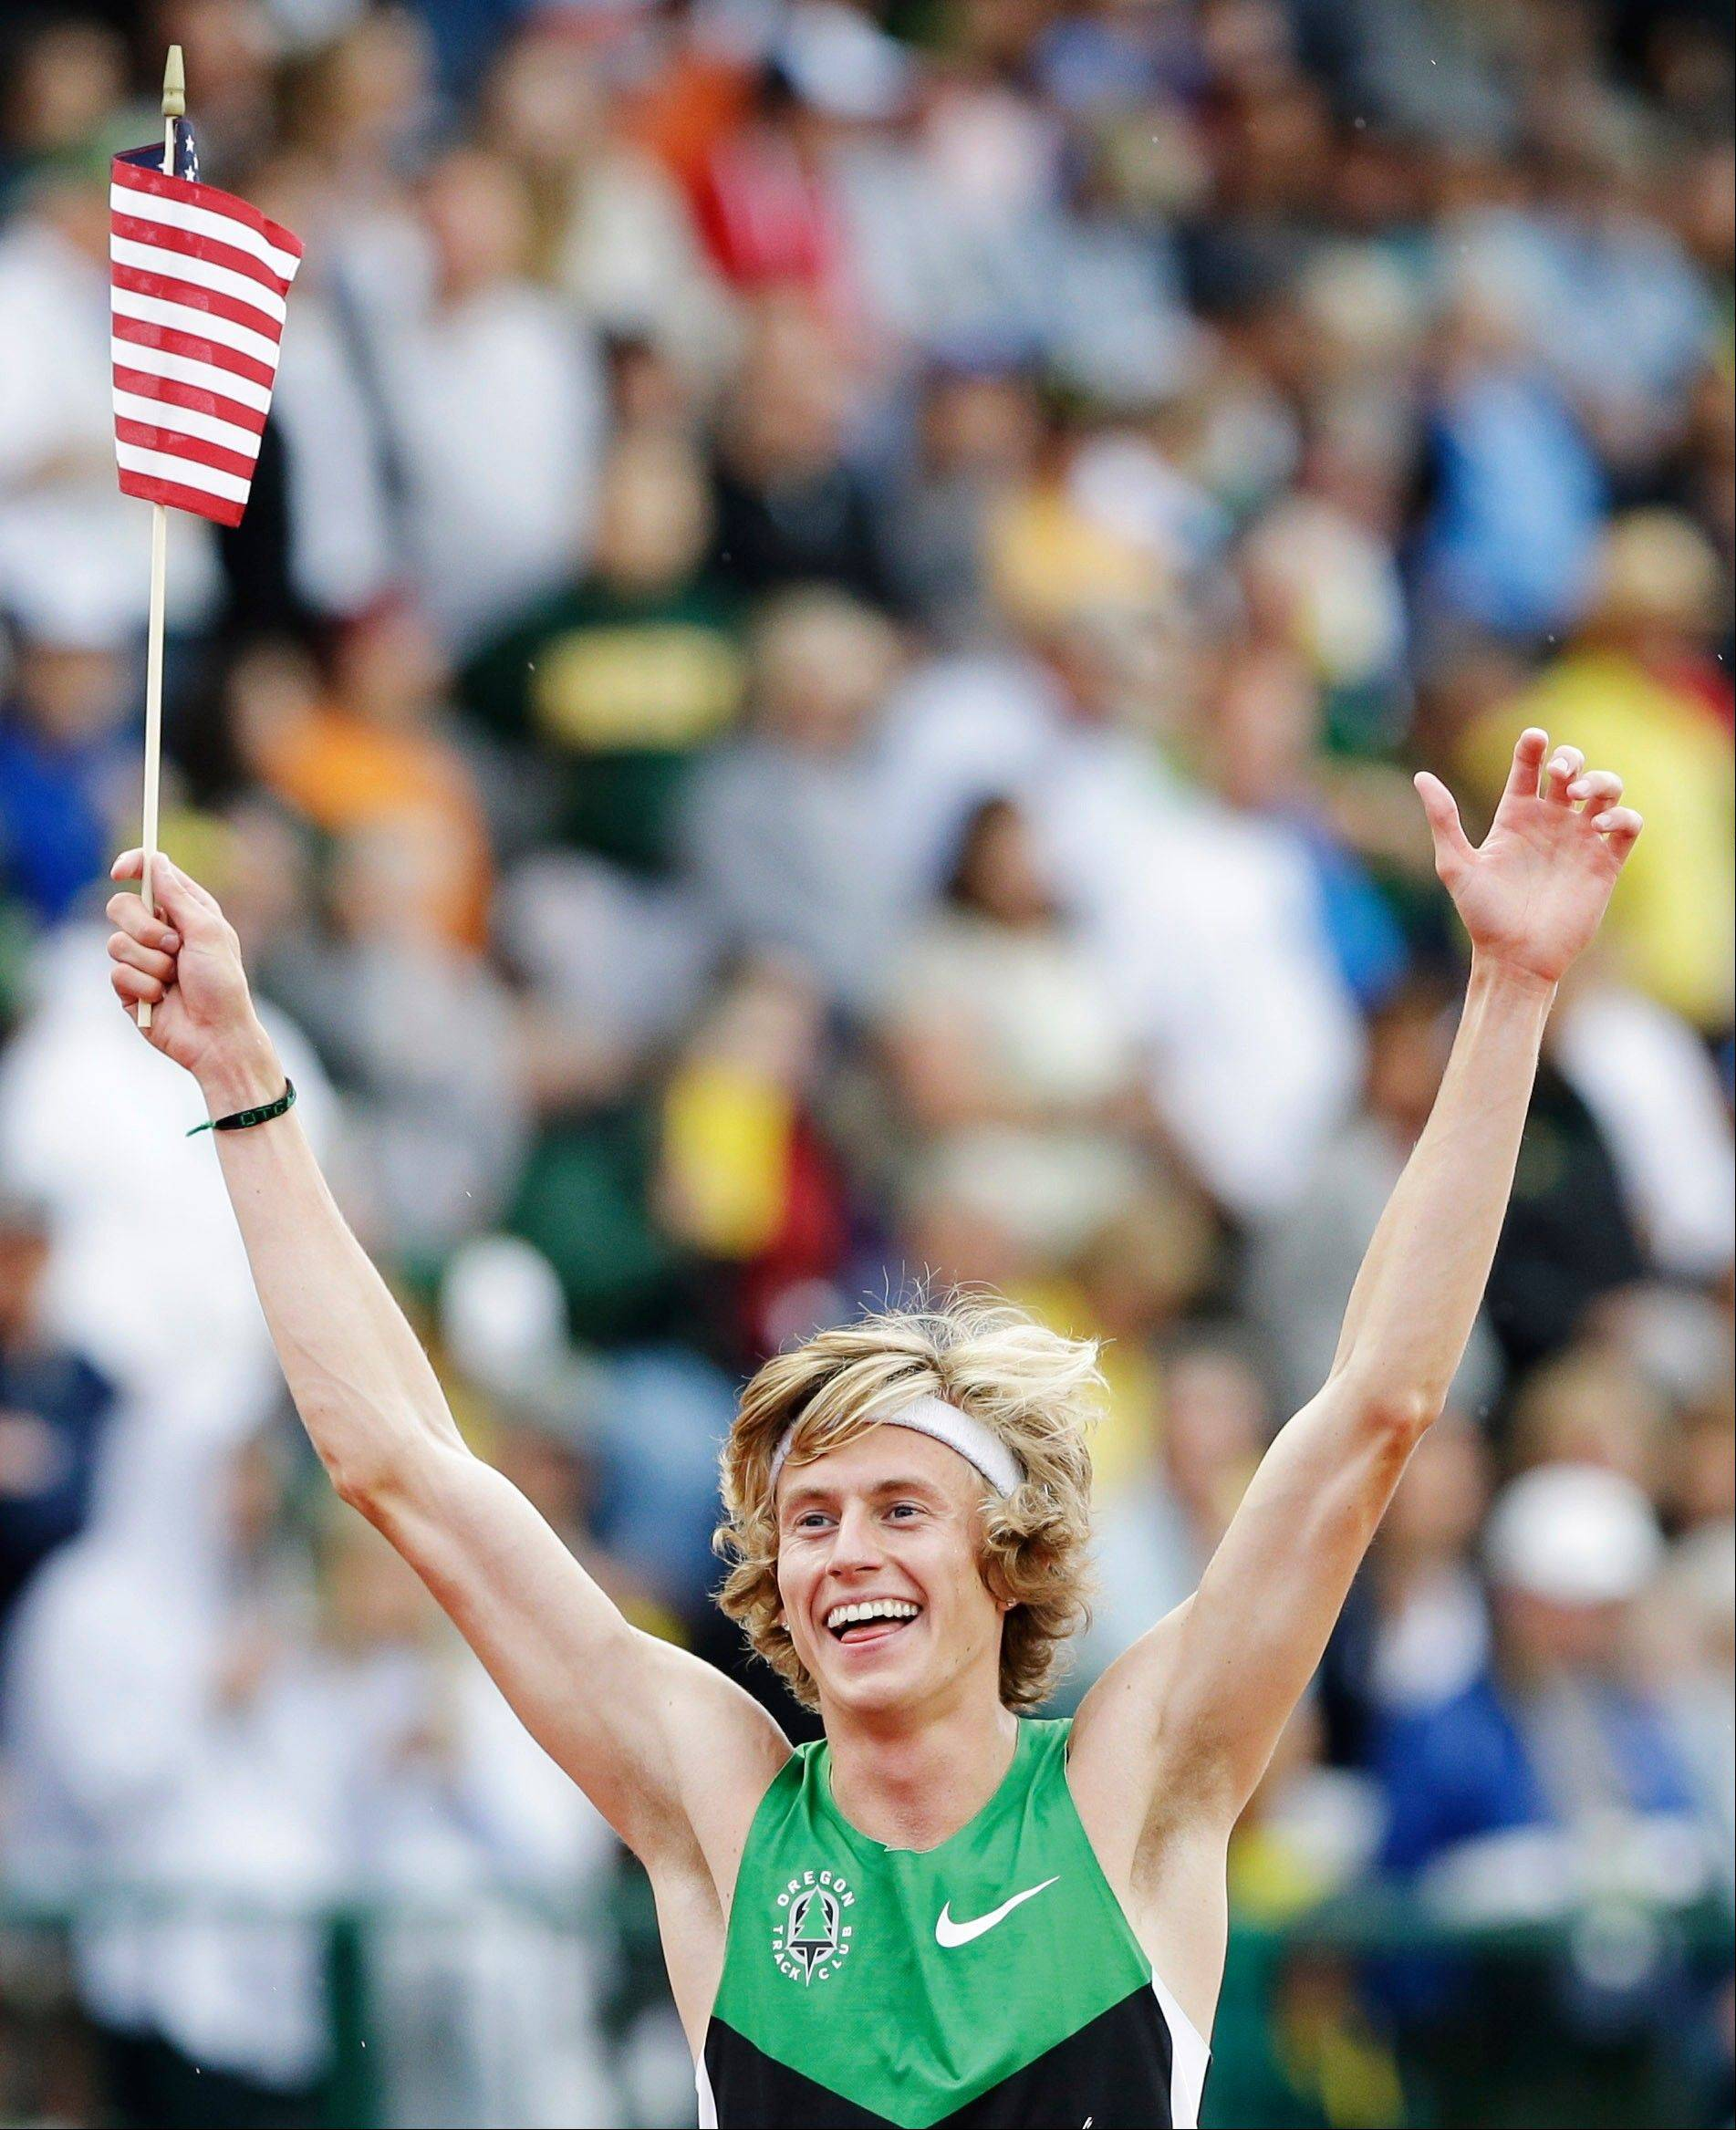 Associate Press Evan Jager celebrates after winning the men's 3,000-meter steeplechase at the U.S. Olympic Track and Field Trials Thursday. The Jacobs High School grad advanced to the Olympics but finished sixth in the event.